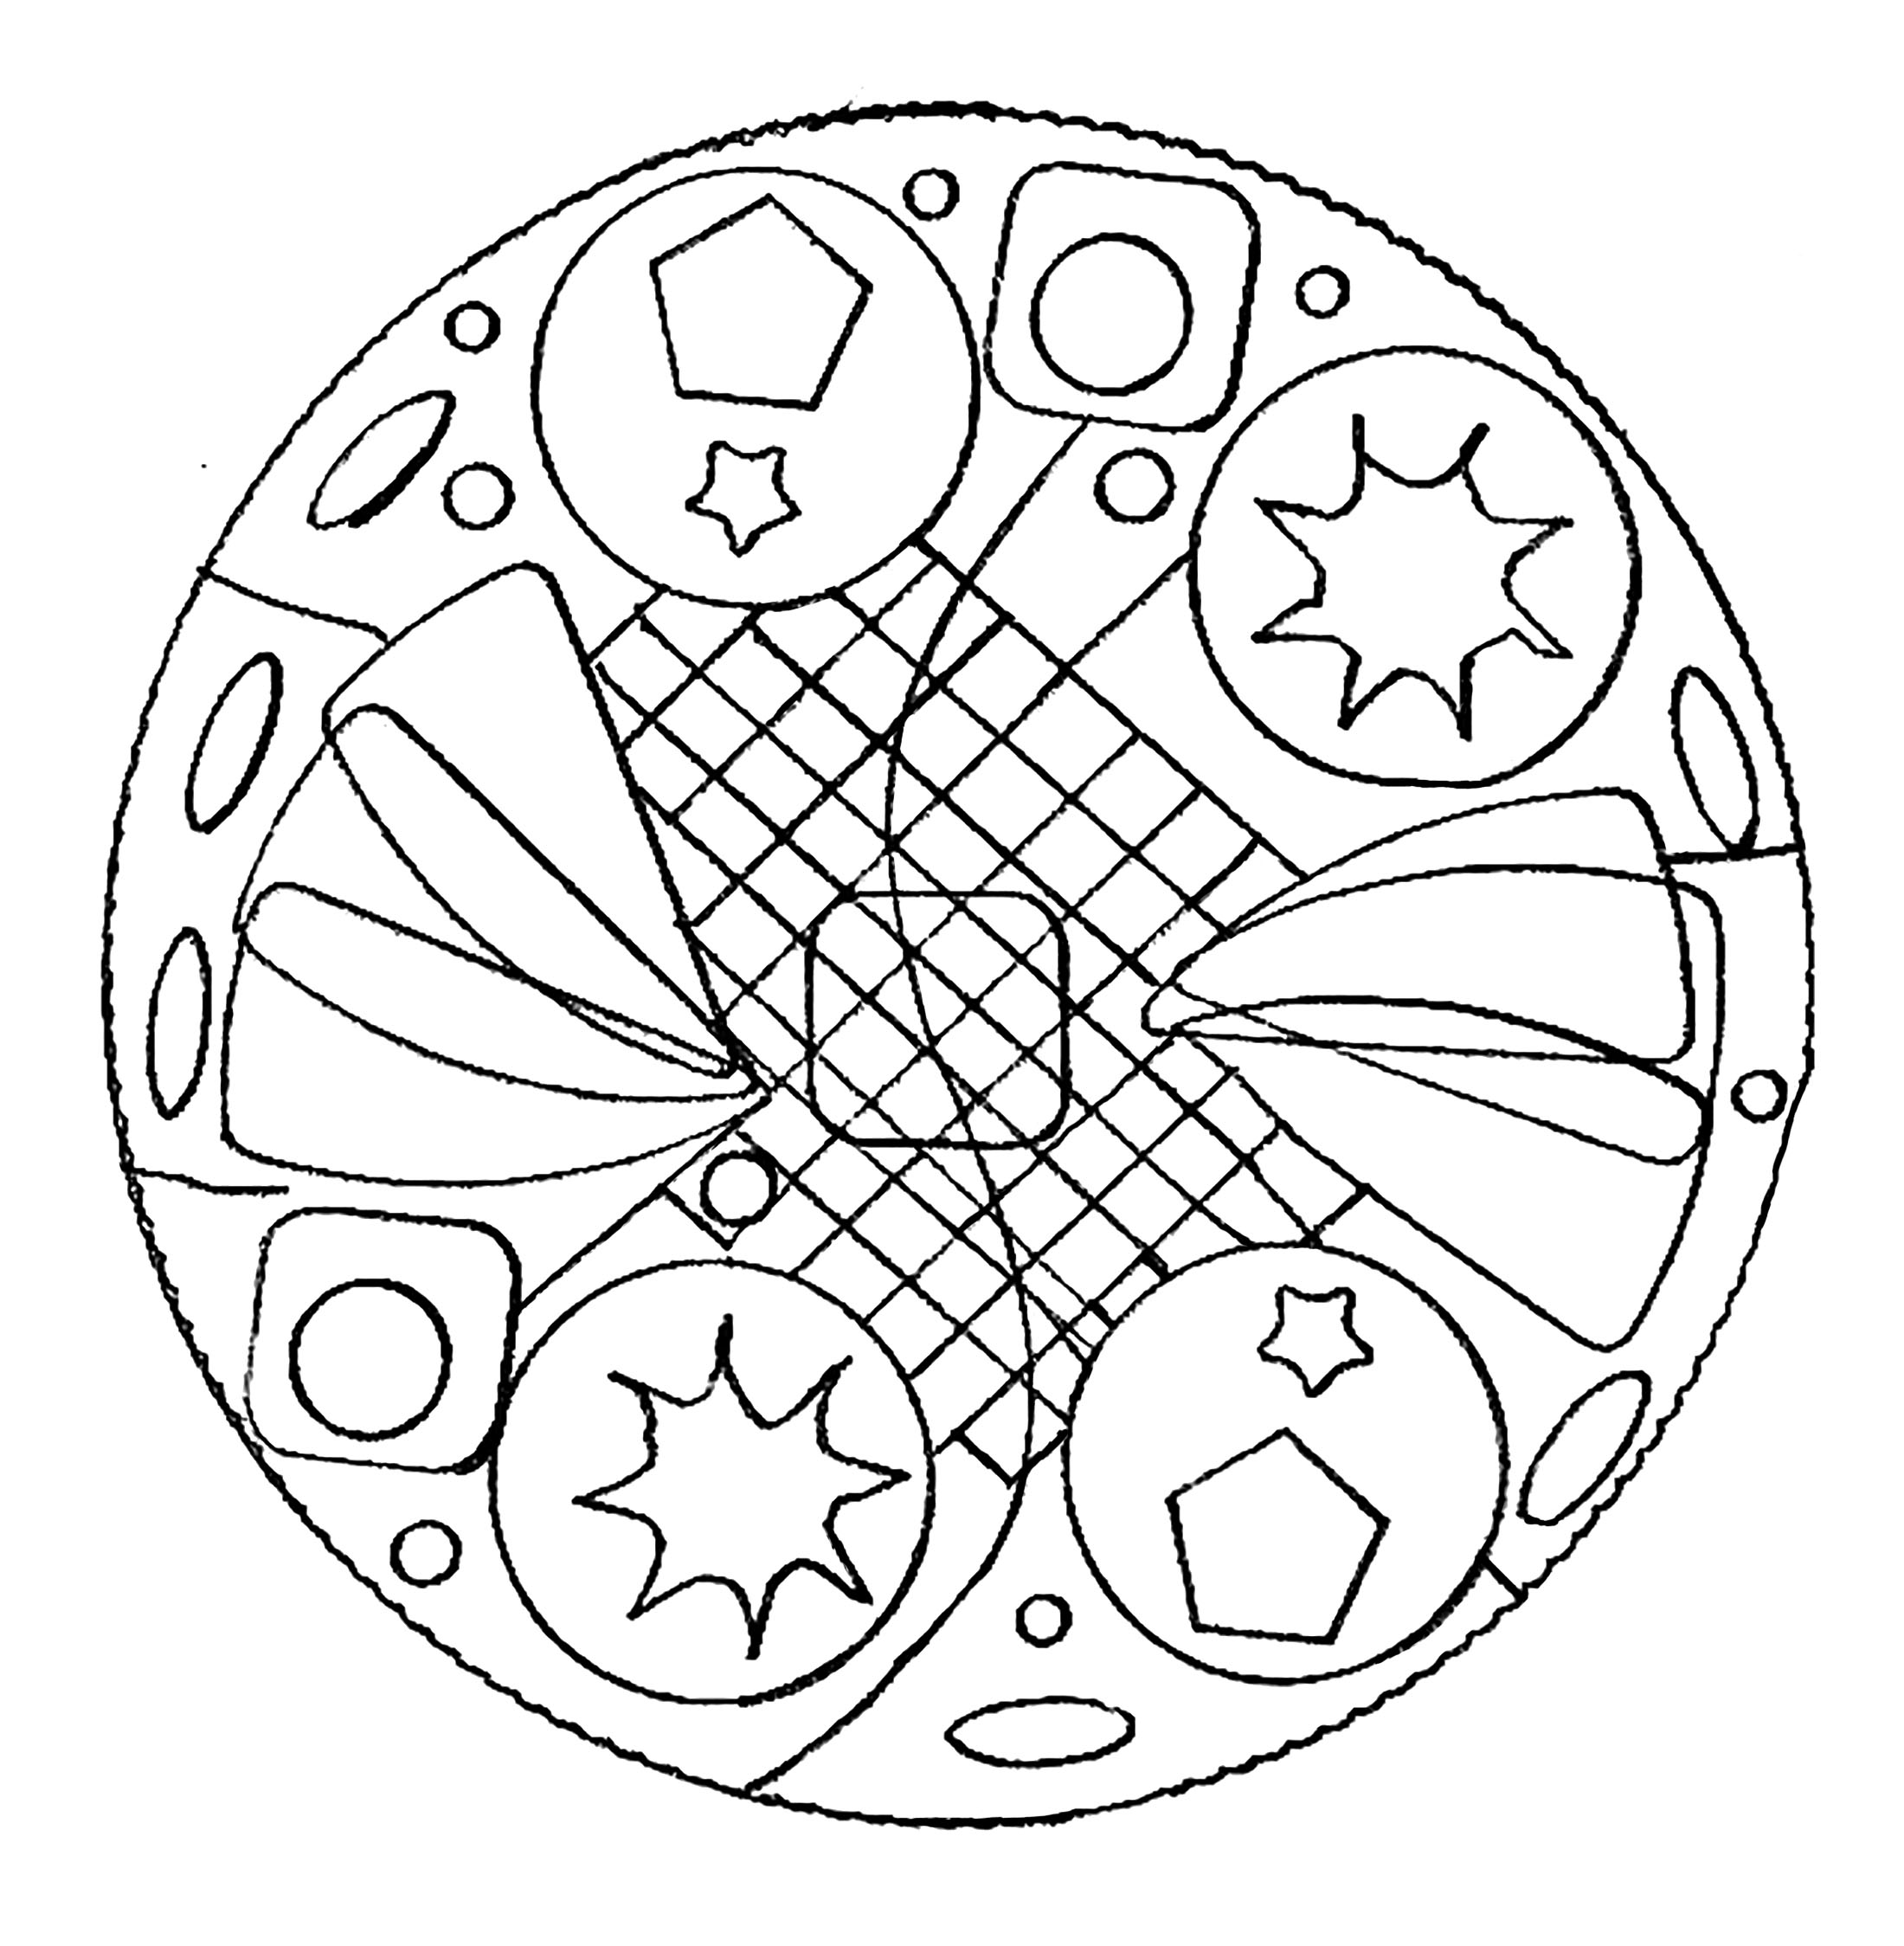 mandalas to color for adults mandala for coloring cool coloring pages for adults to for mandalas adults color